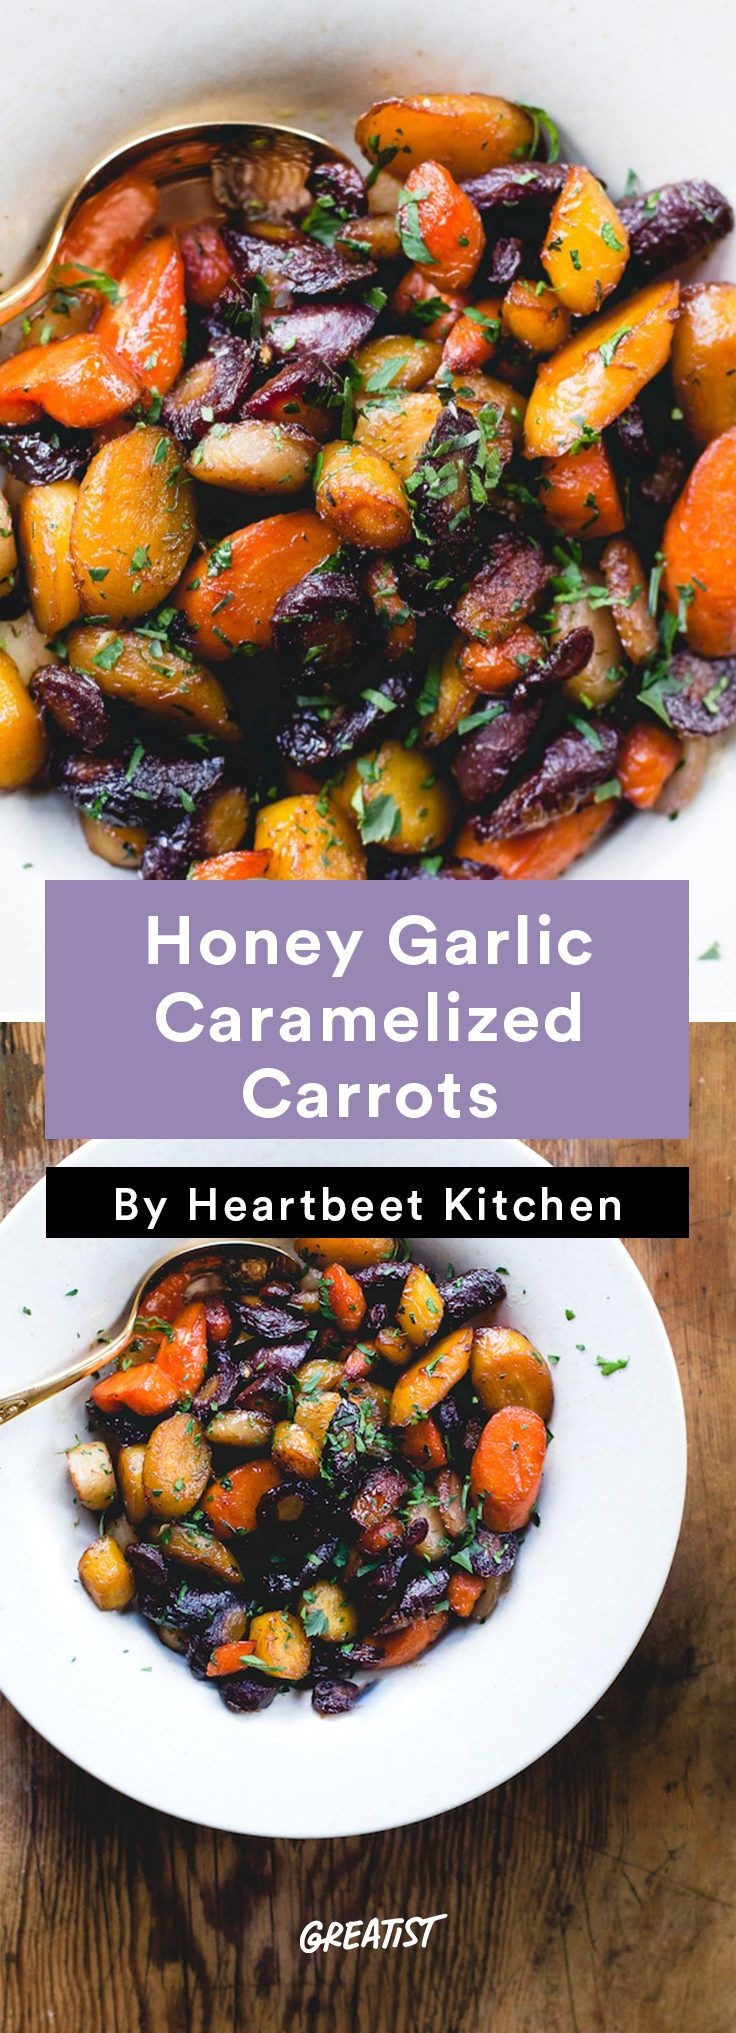 1. Honey Garlic Caramelized Carrots #greatist http://greatist.com/eat/vegetable-side-dishes-for-the-holidays